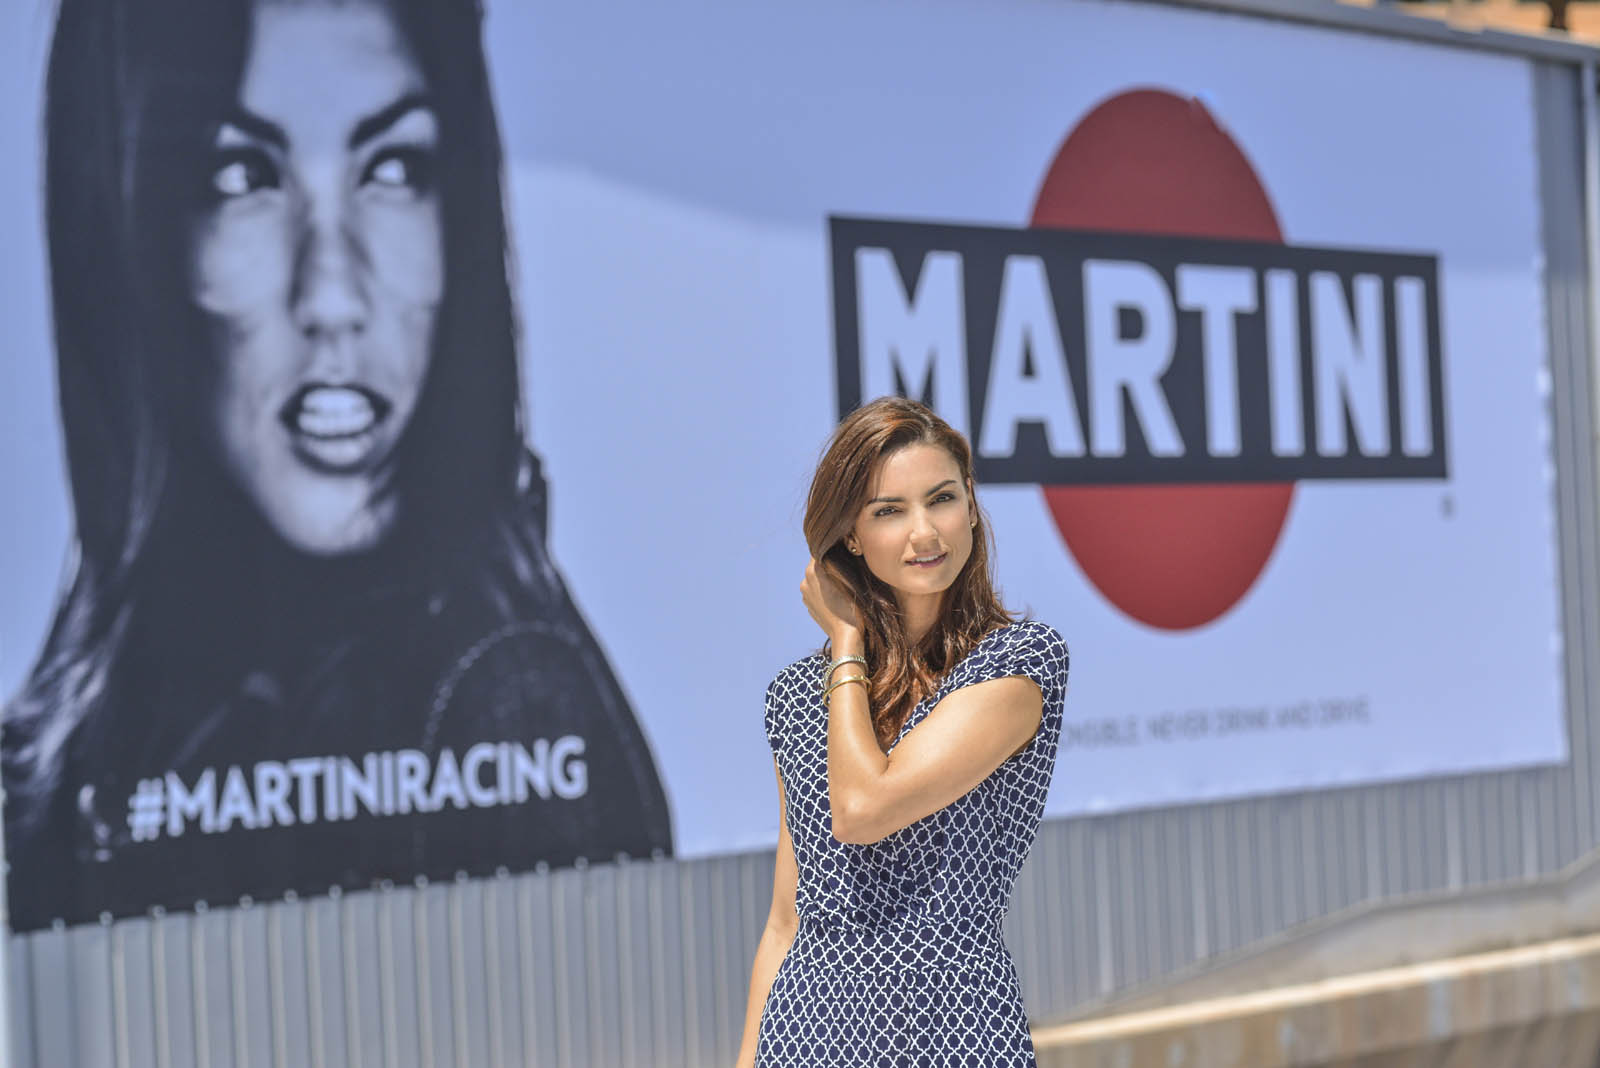 Martini_Monaco_Billboard_09